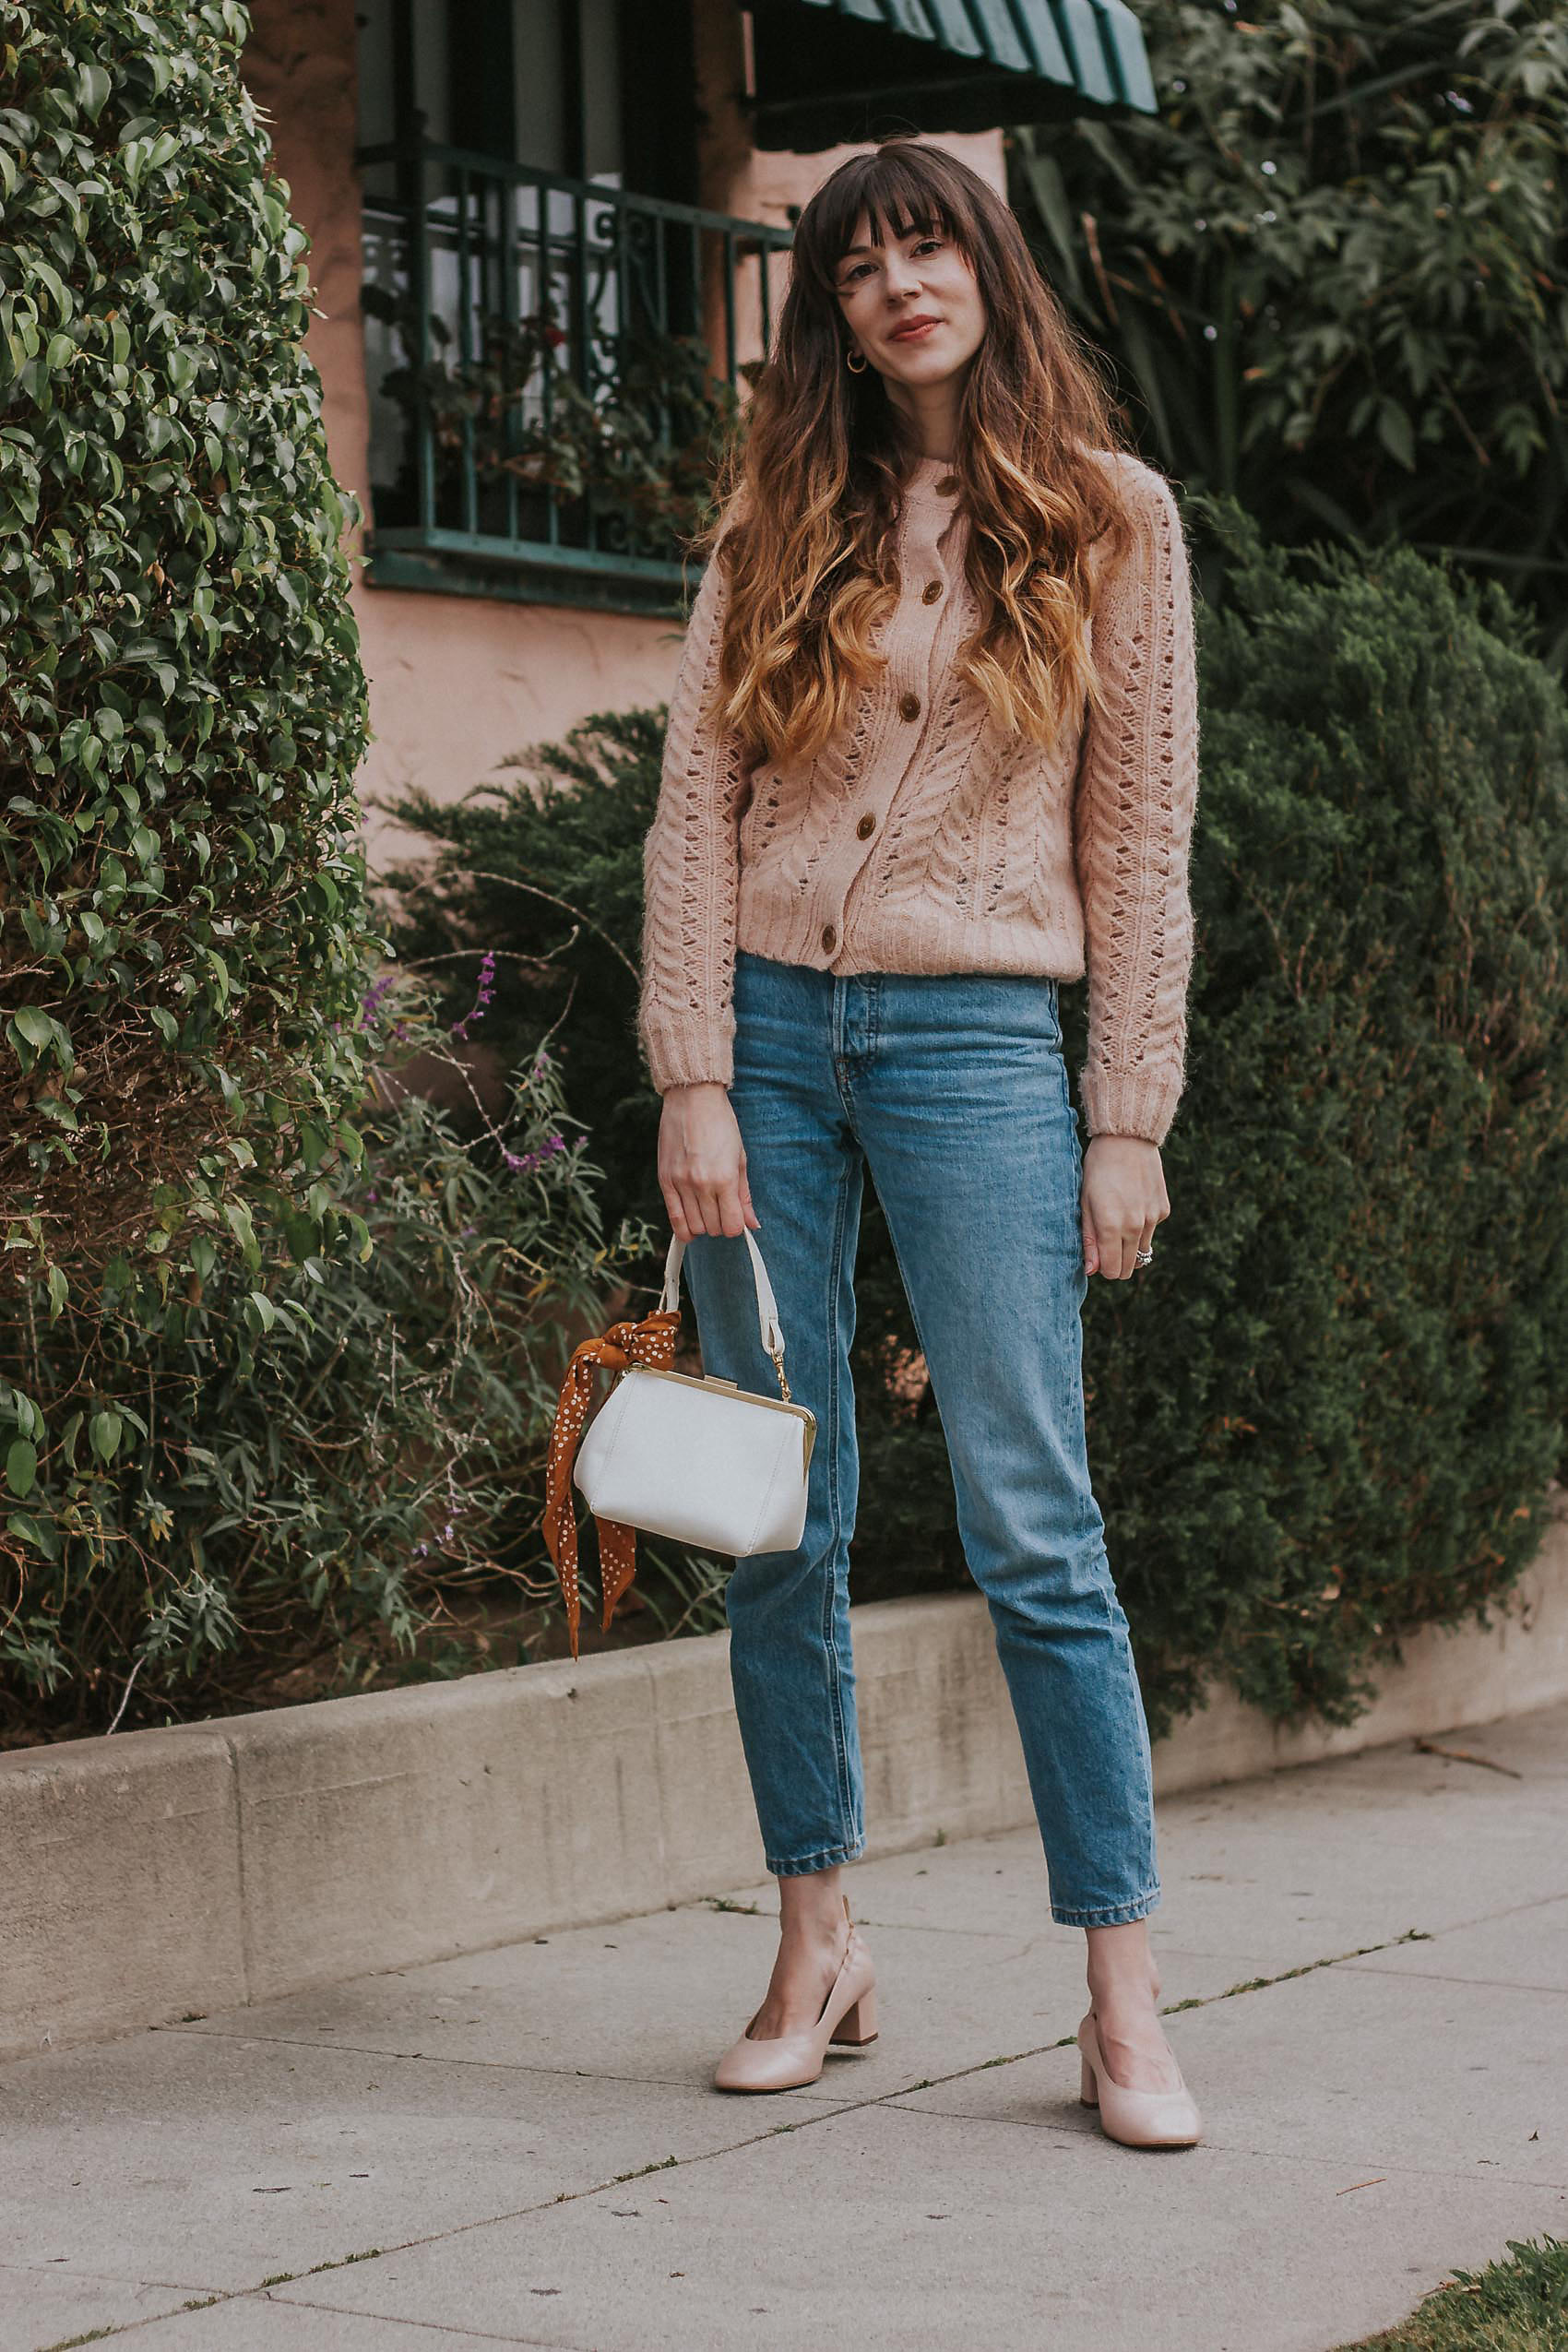 Los Angeles Fashion Blogger wearing J.Crew Point Sure Pointelle Cardigan, Everlane 90's Cheeky Jean and Everlane Day Heels